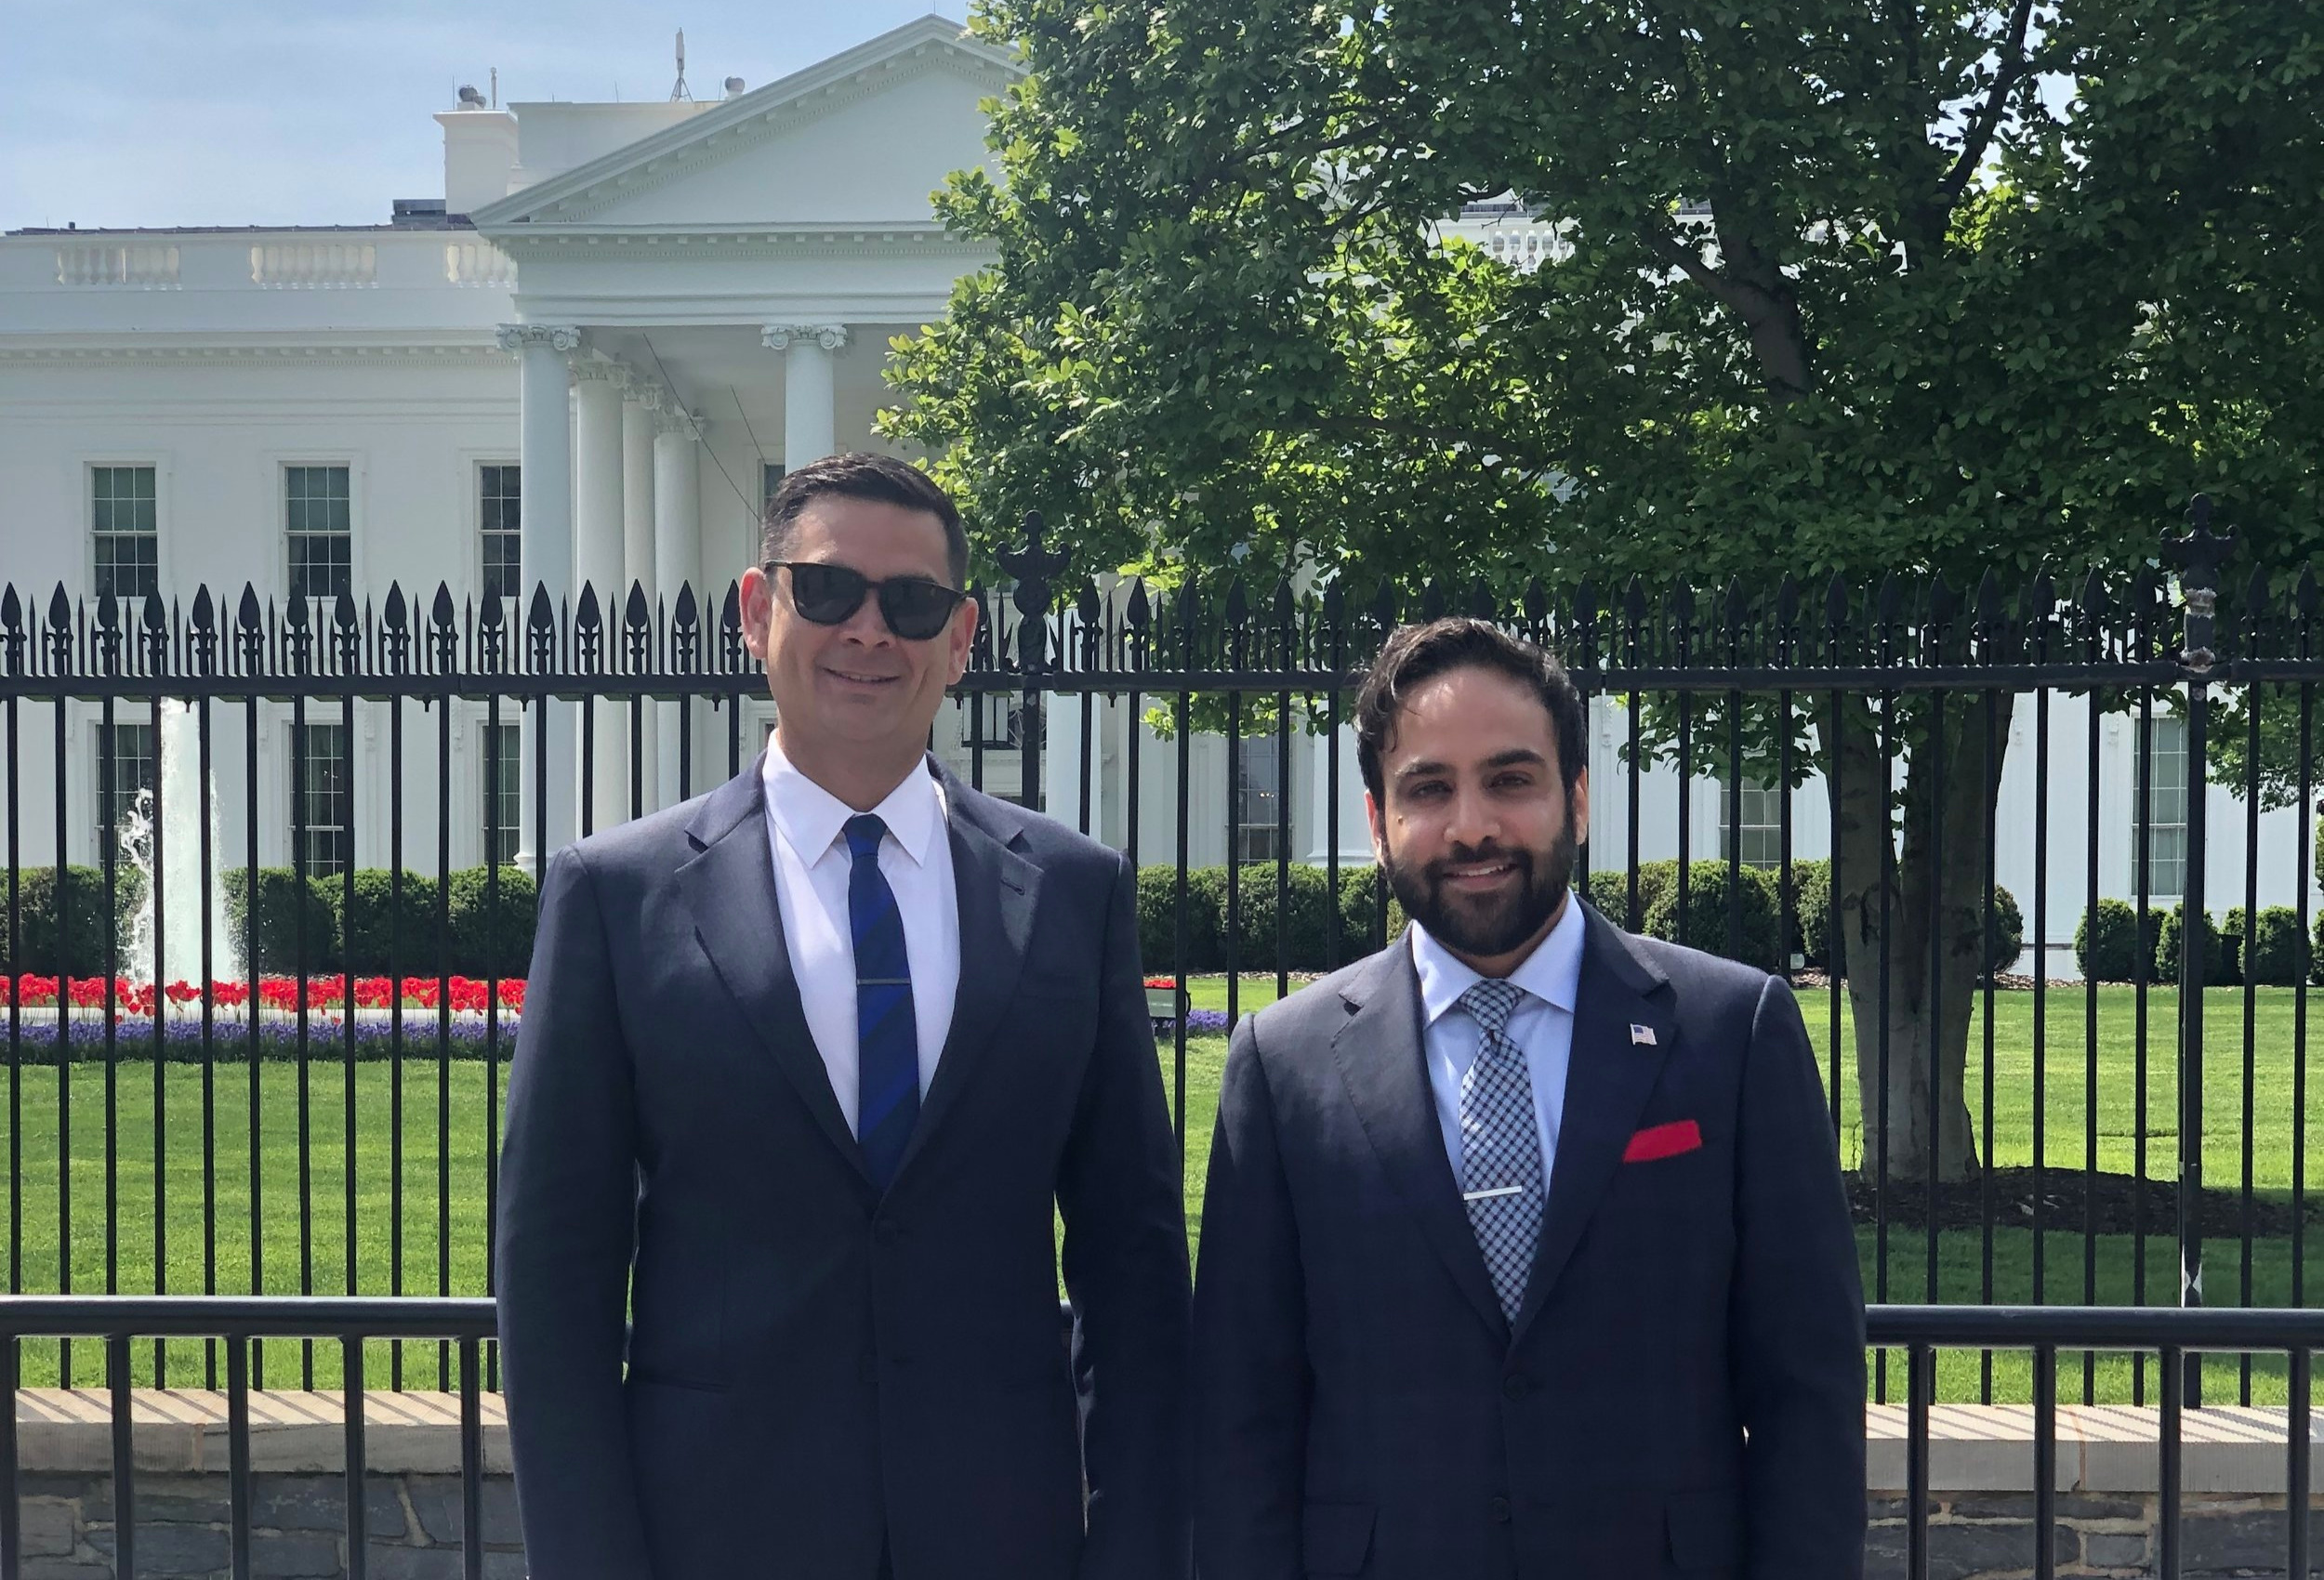 Our founding partner, Alex Bhathal, attended the White House Conference on Opportunity Zones featuring President Trump, leading administration officials, and community leaders.